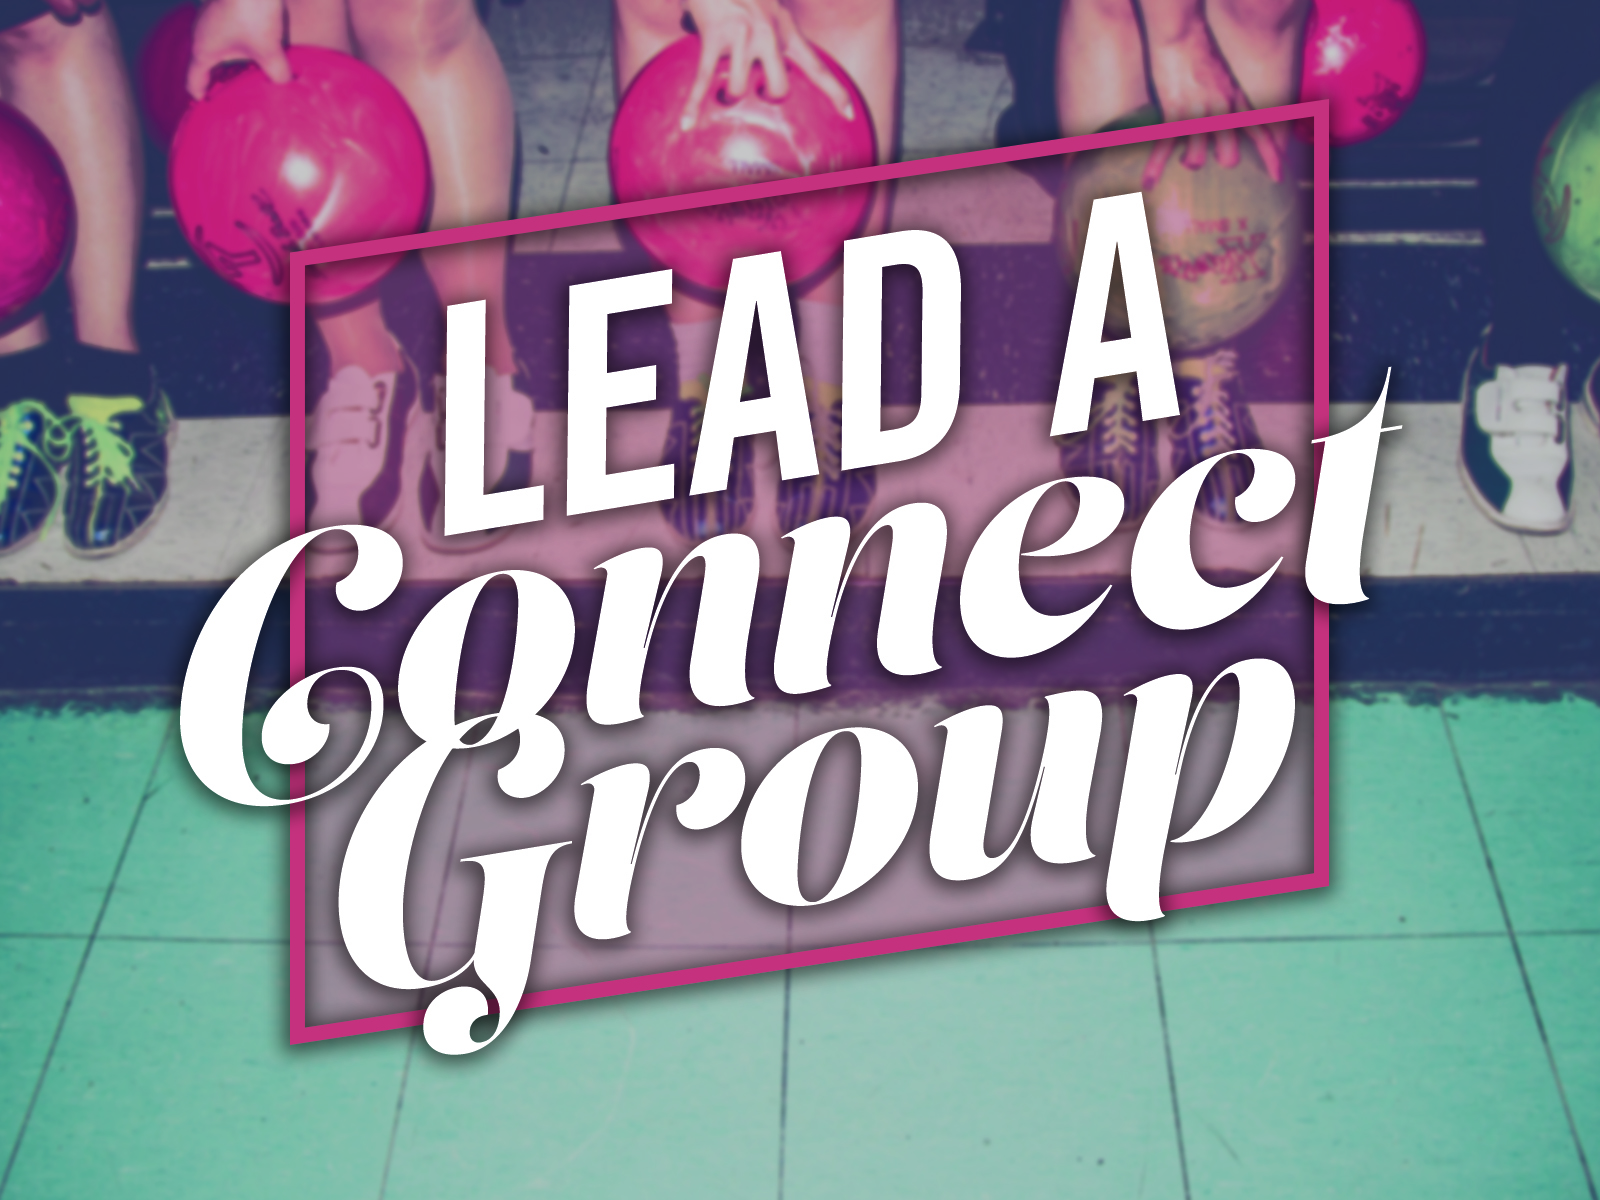 Leadaconnectgroup 2016